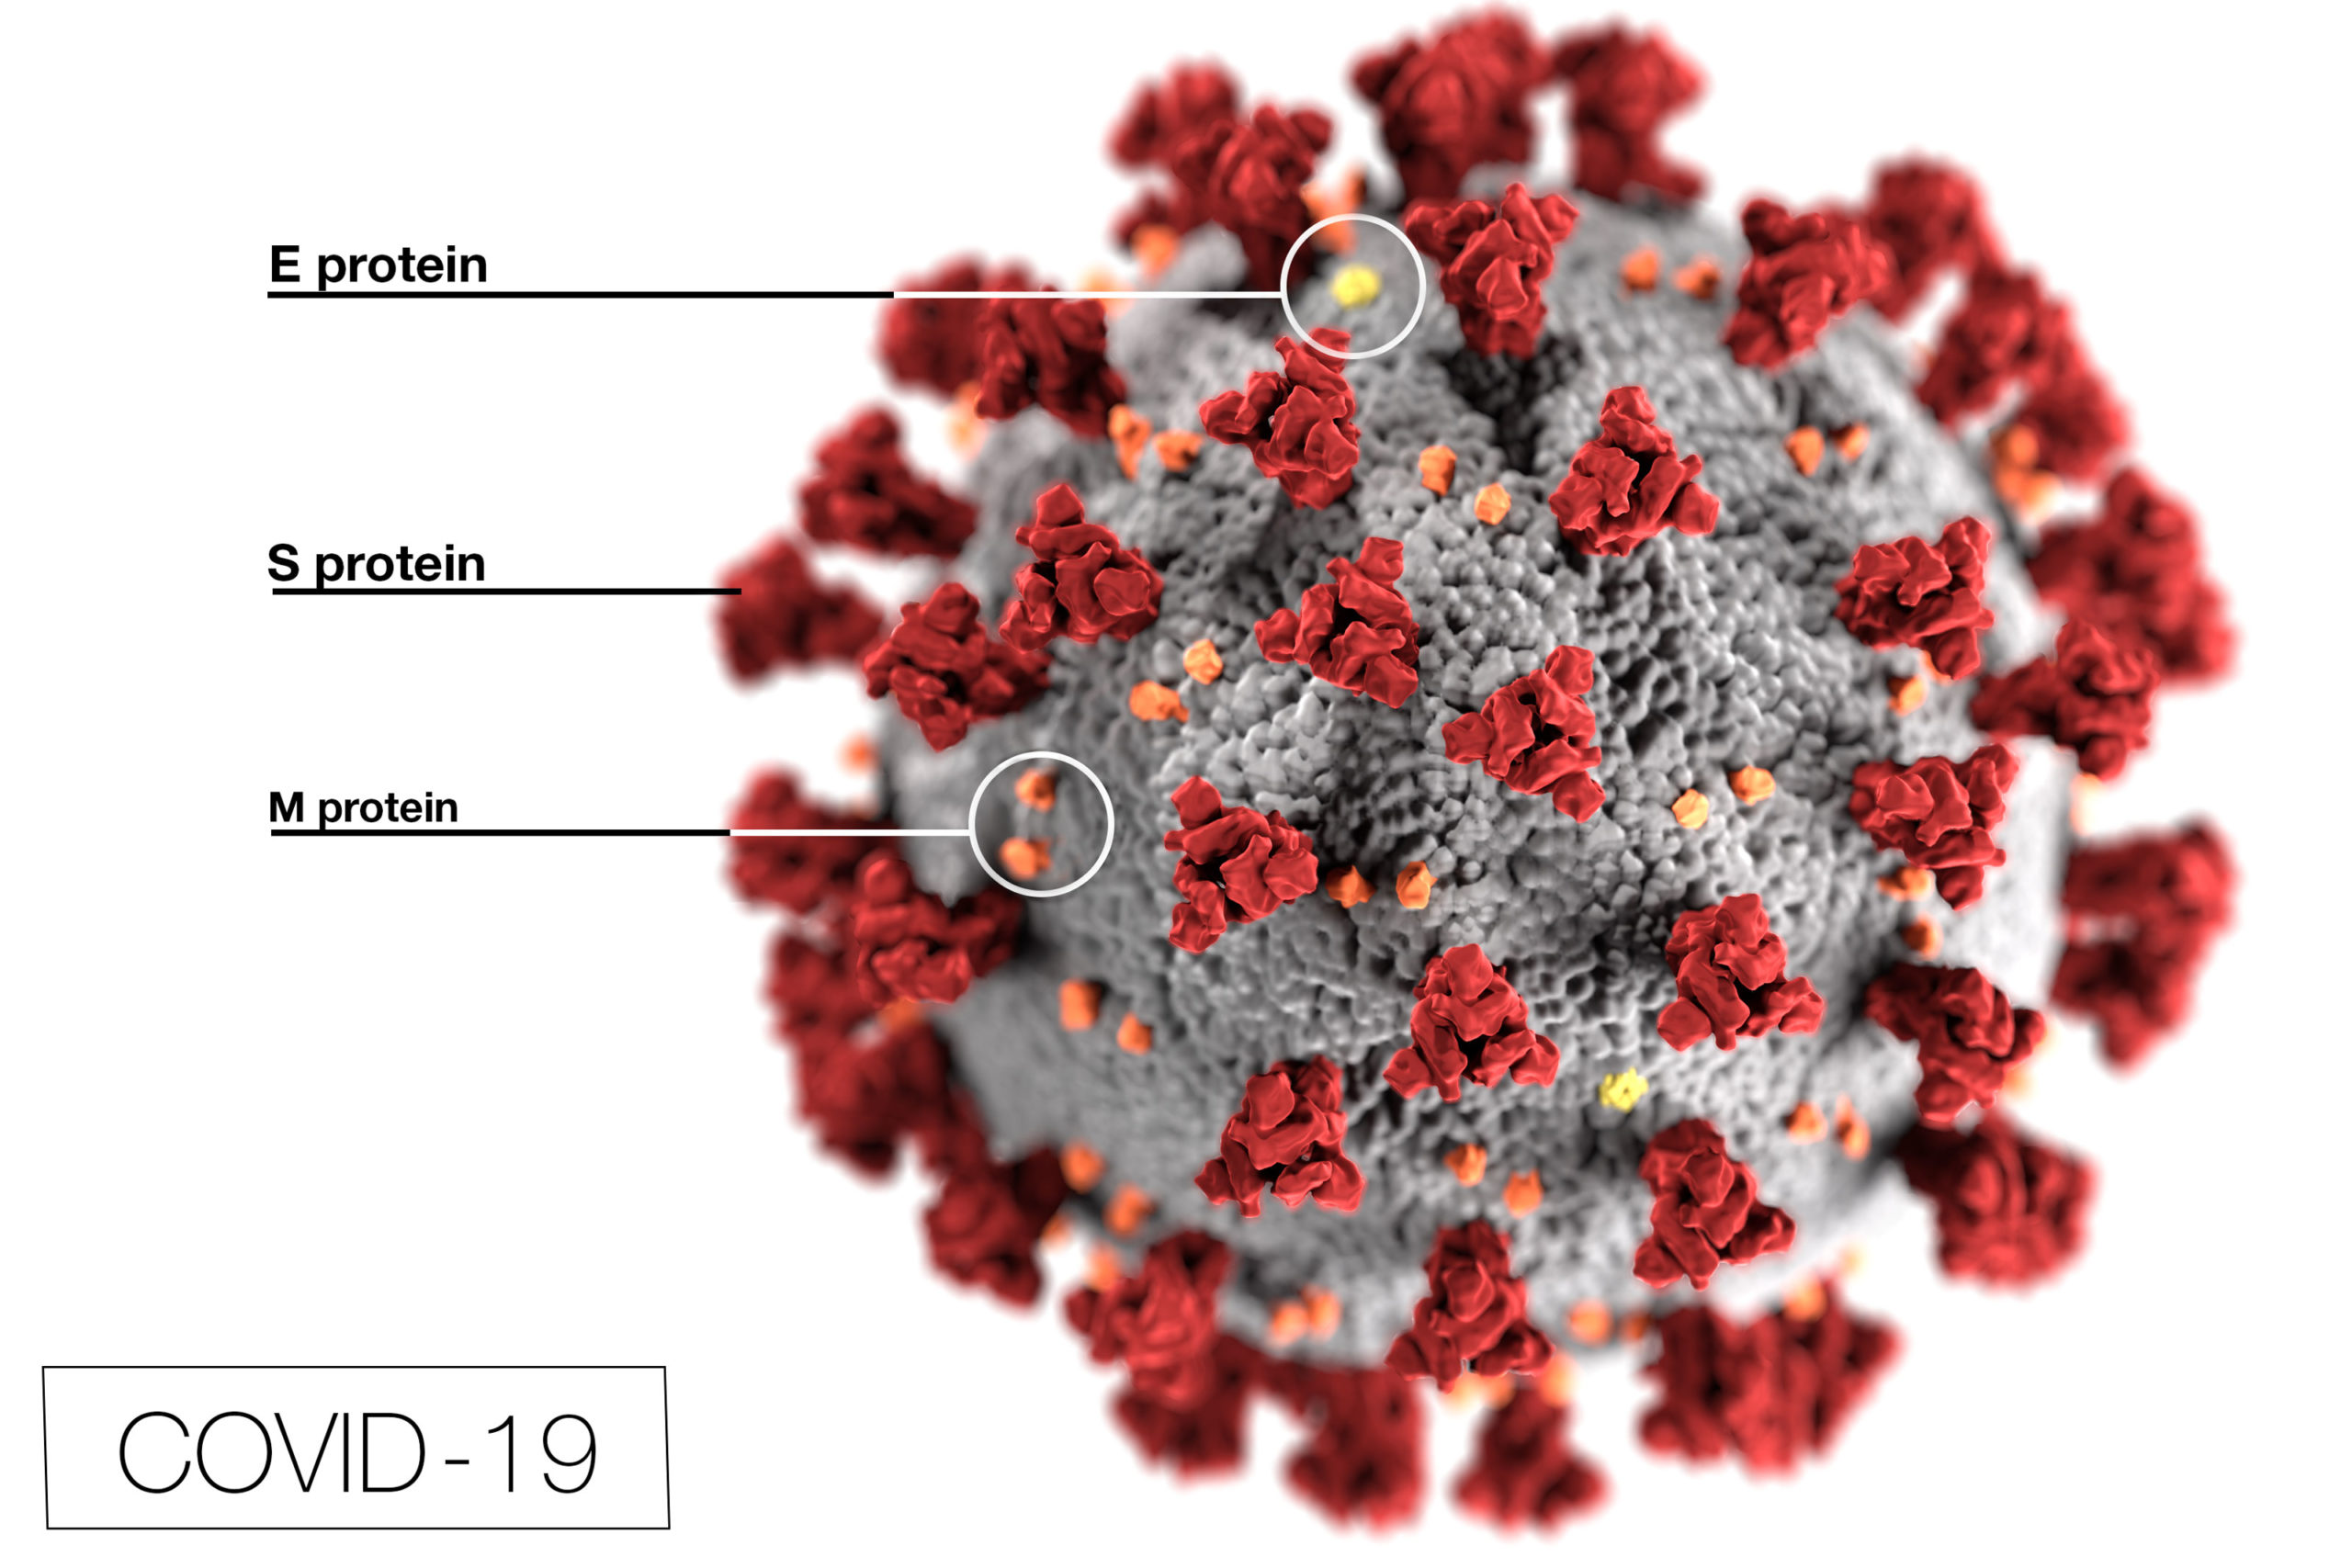 This illustration, created at the Centers for Disease Control and Prevention, reveals ultrastructural morphology exhibited by coronaviruses. Note the spikes that adorn the outer surface of the virus, which impart the look of a corona surrounding the virion, when viewed electron microscopically.